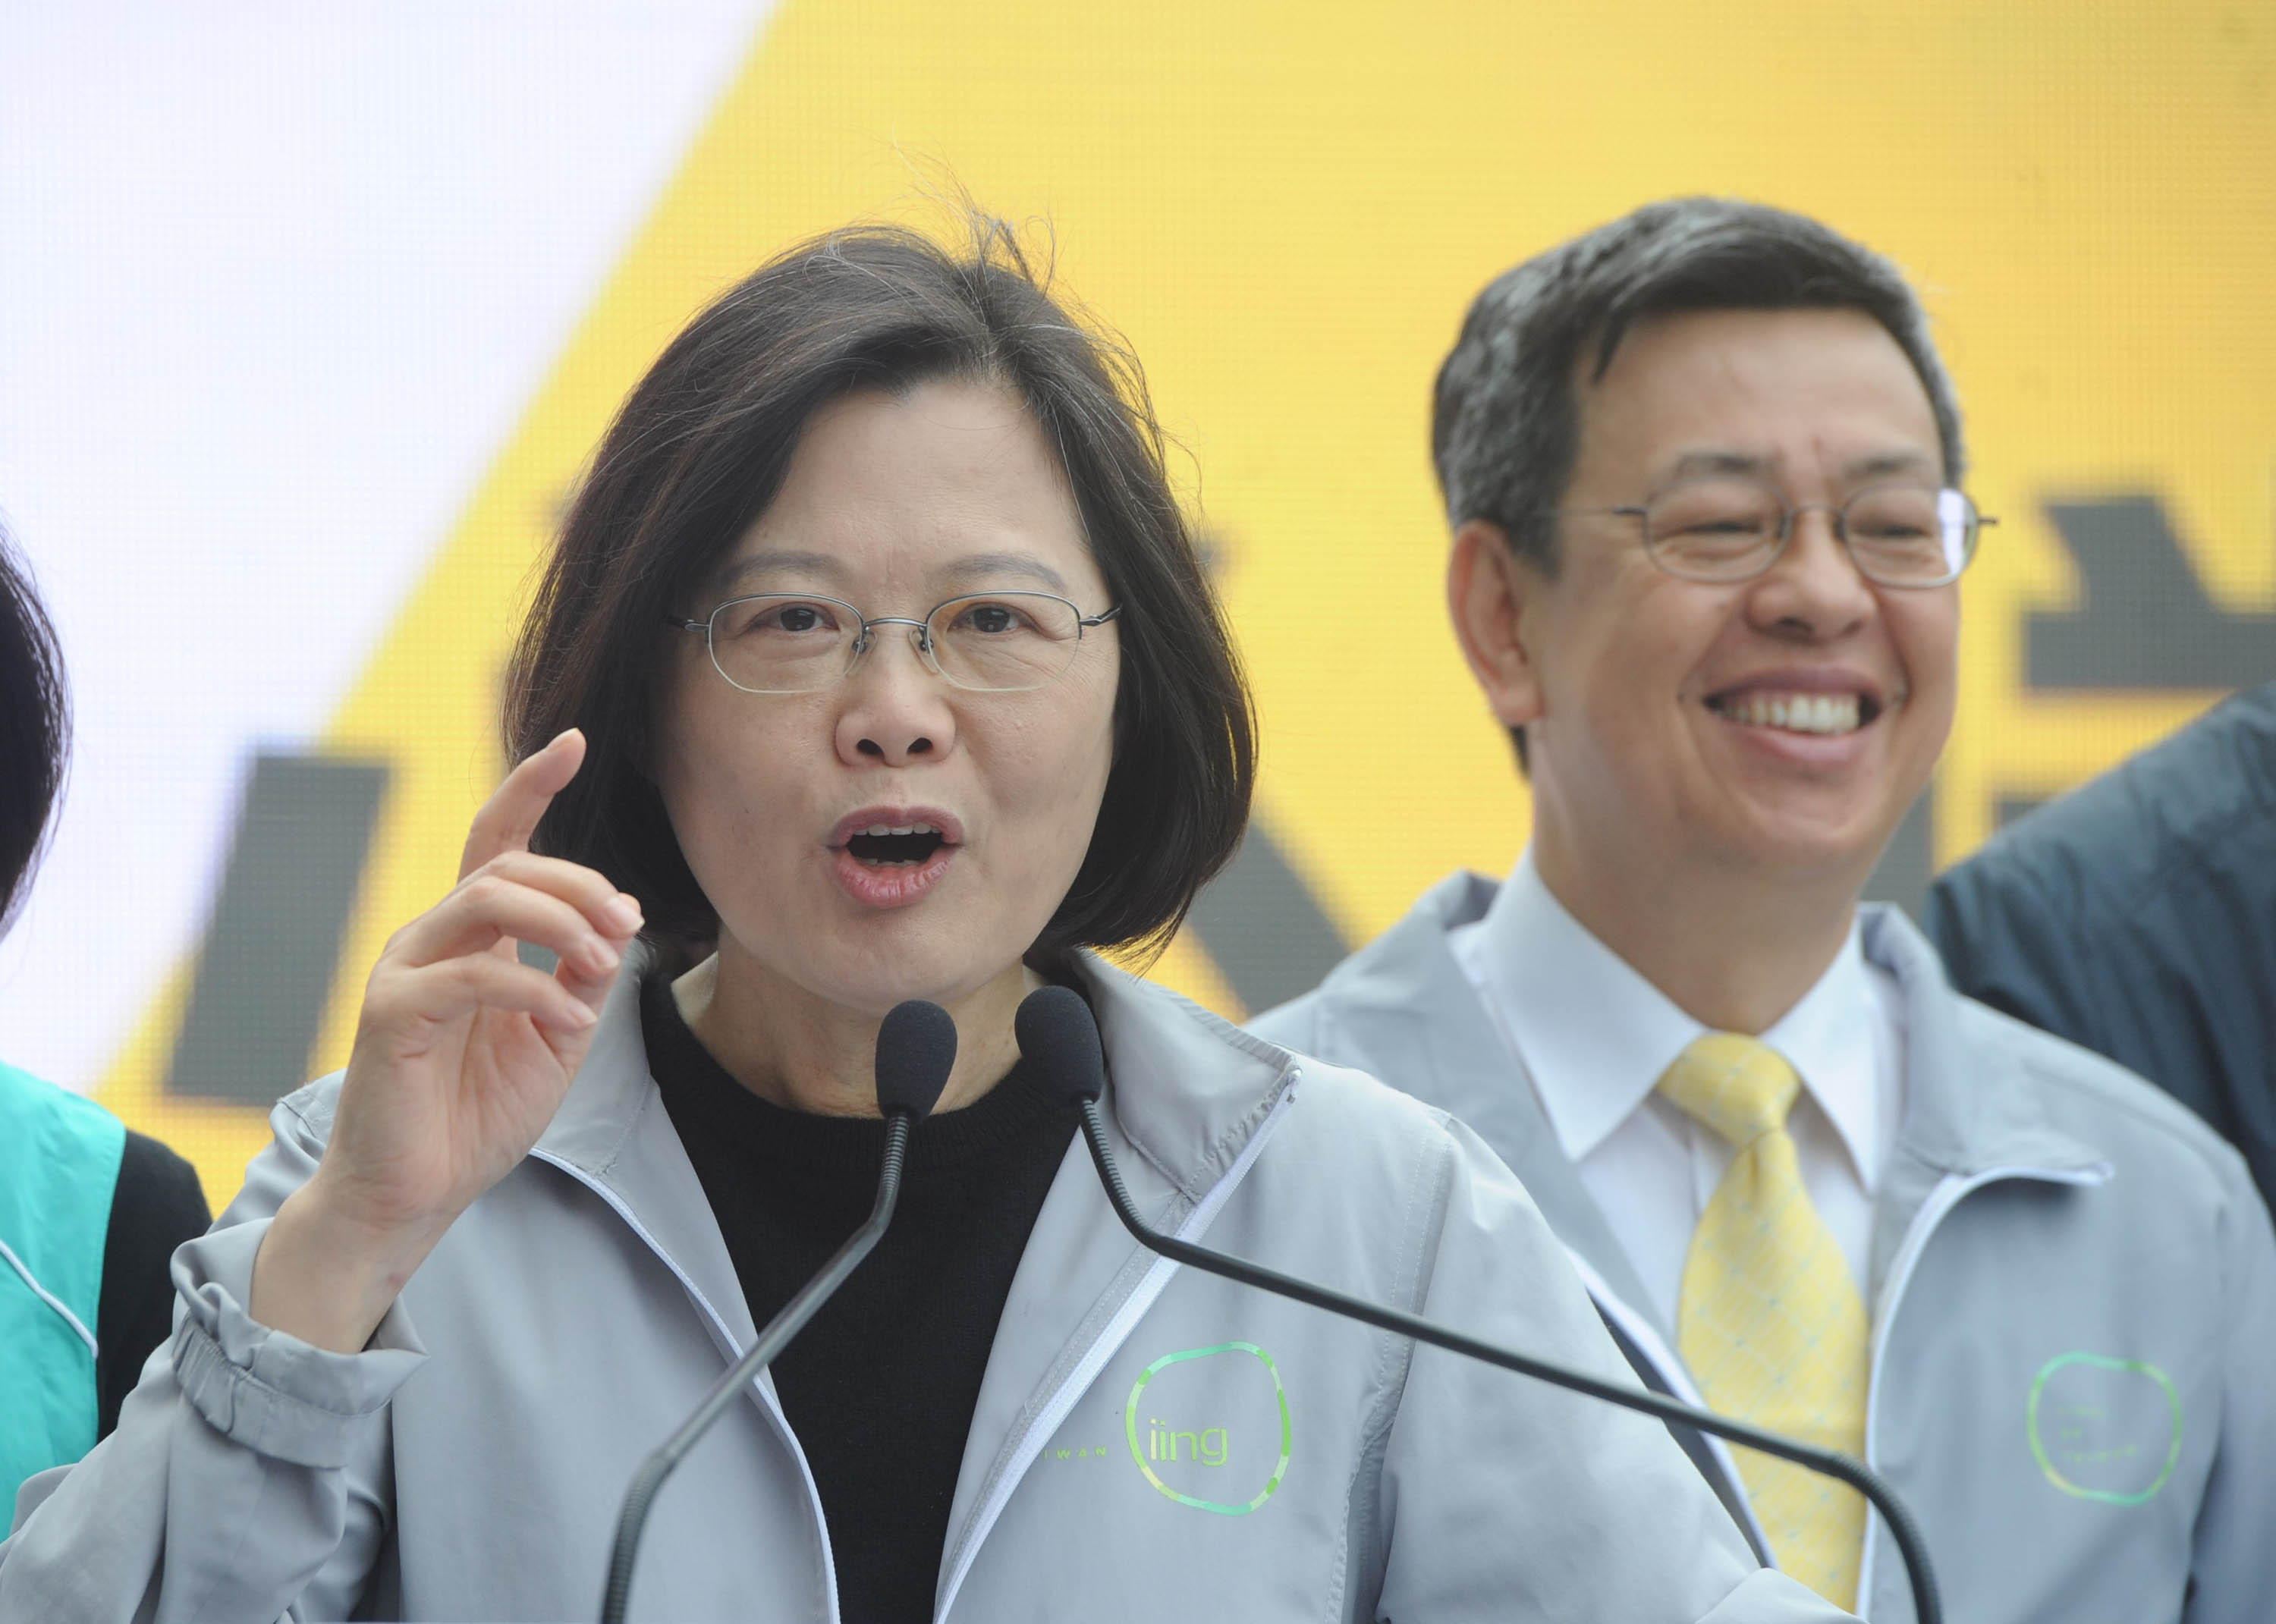 The article analyzed Taiwan's presidential election, and said that President Ma Ying-jeou's failure to deliver on bold economic targets has made the r